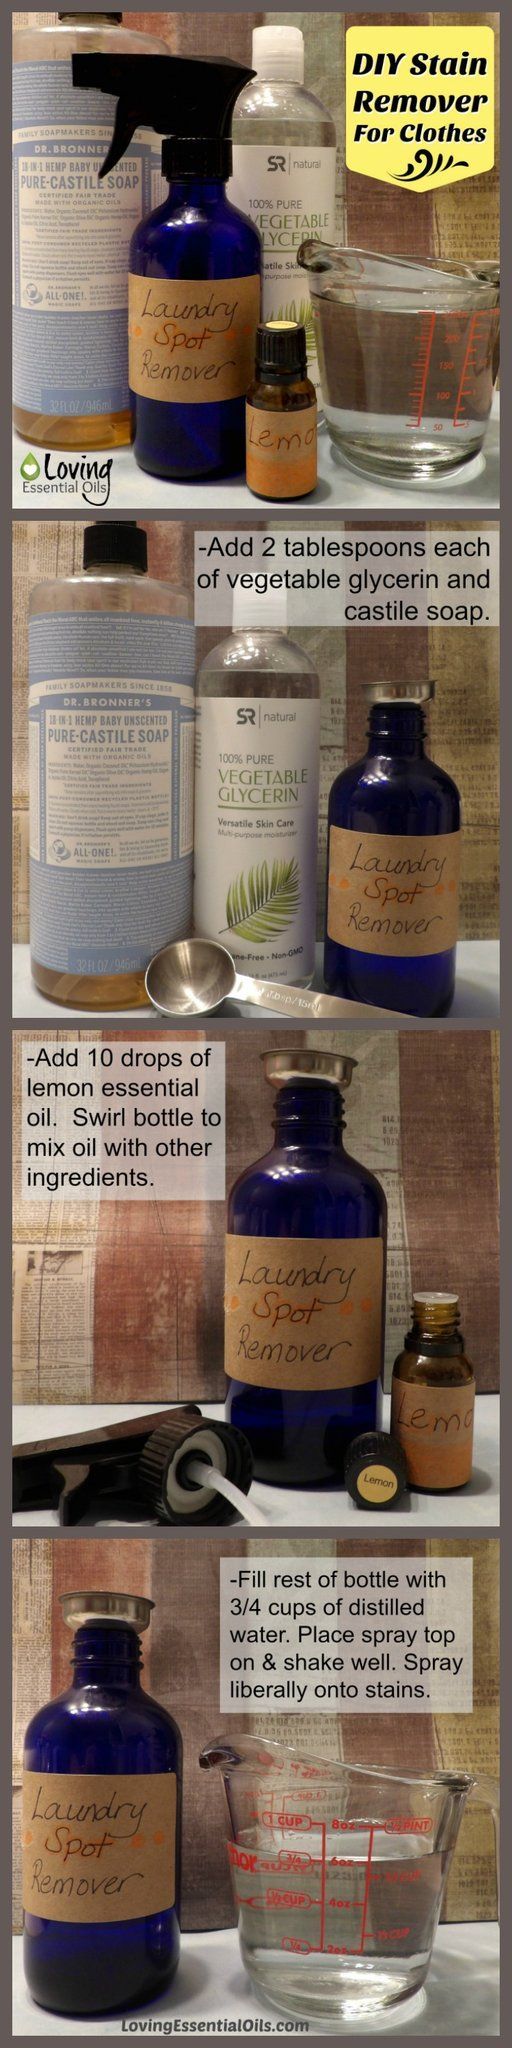 DIY Stain Remover For Clothes Tutorial.  Easy to make, need lemon essential oil, Castile soap, vegetable glycerin and water.